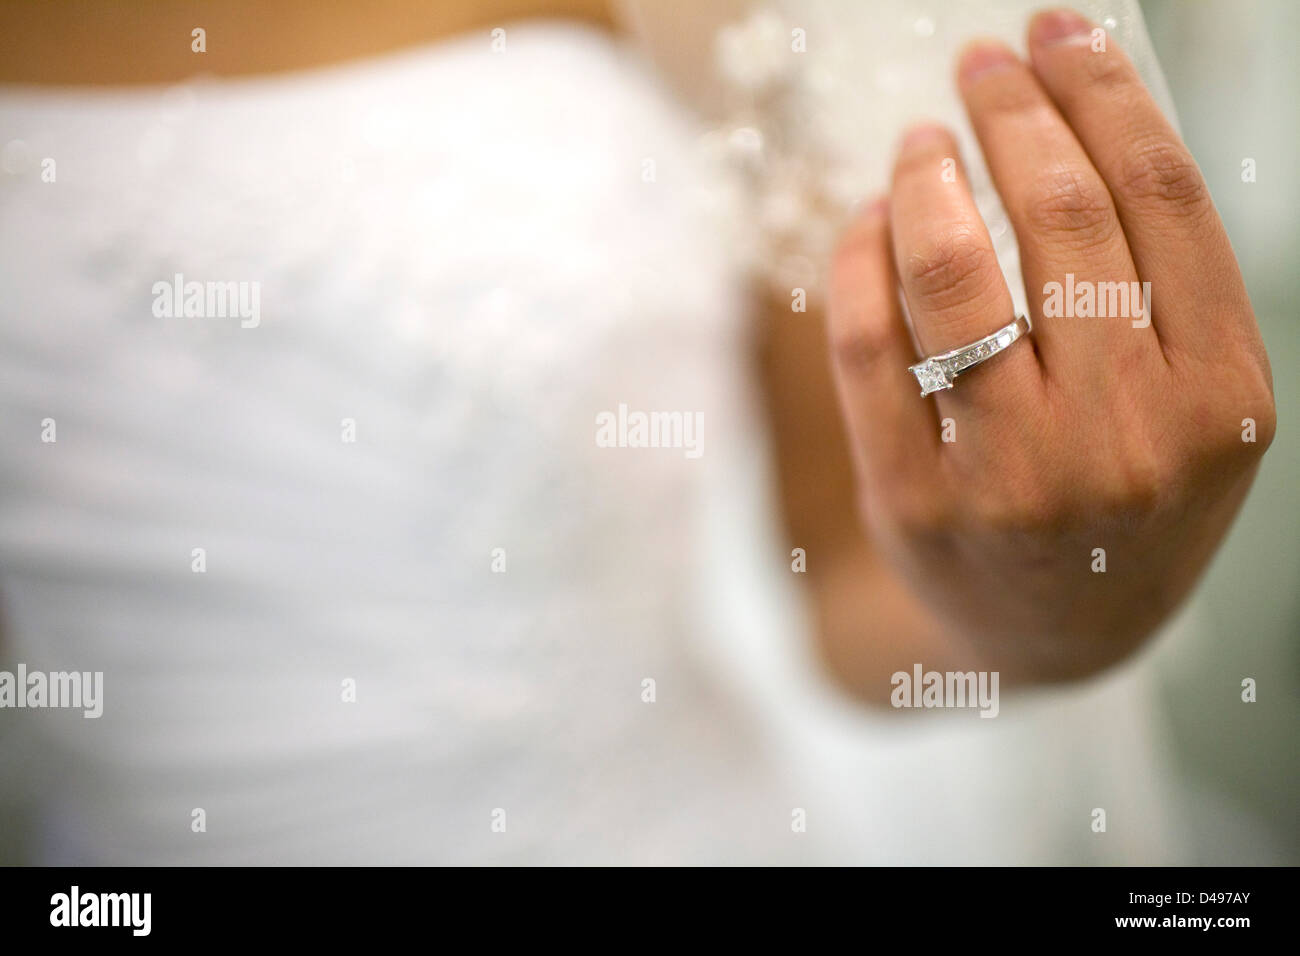 A bride shows her engagement ring on her wedding day. - Stock Image